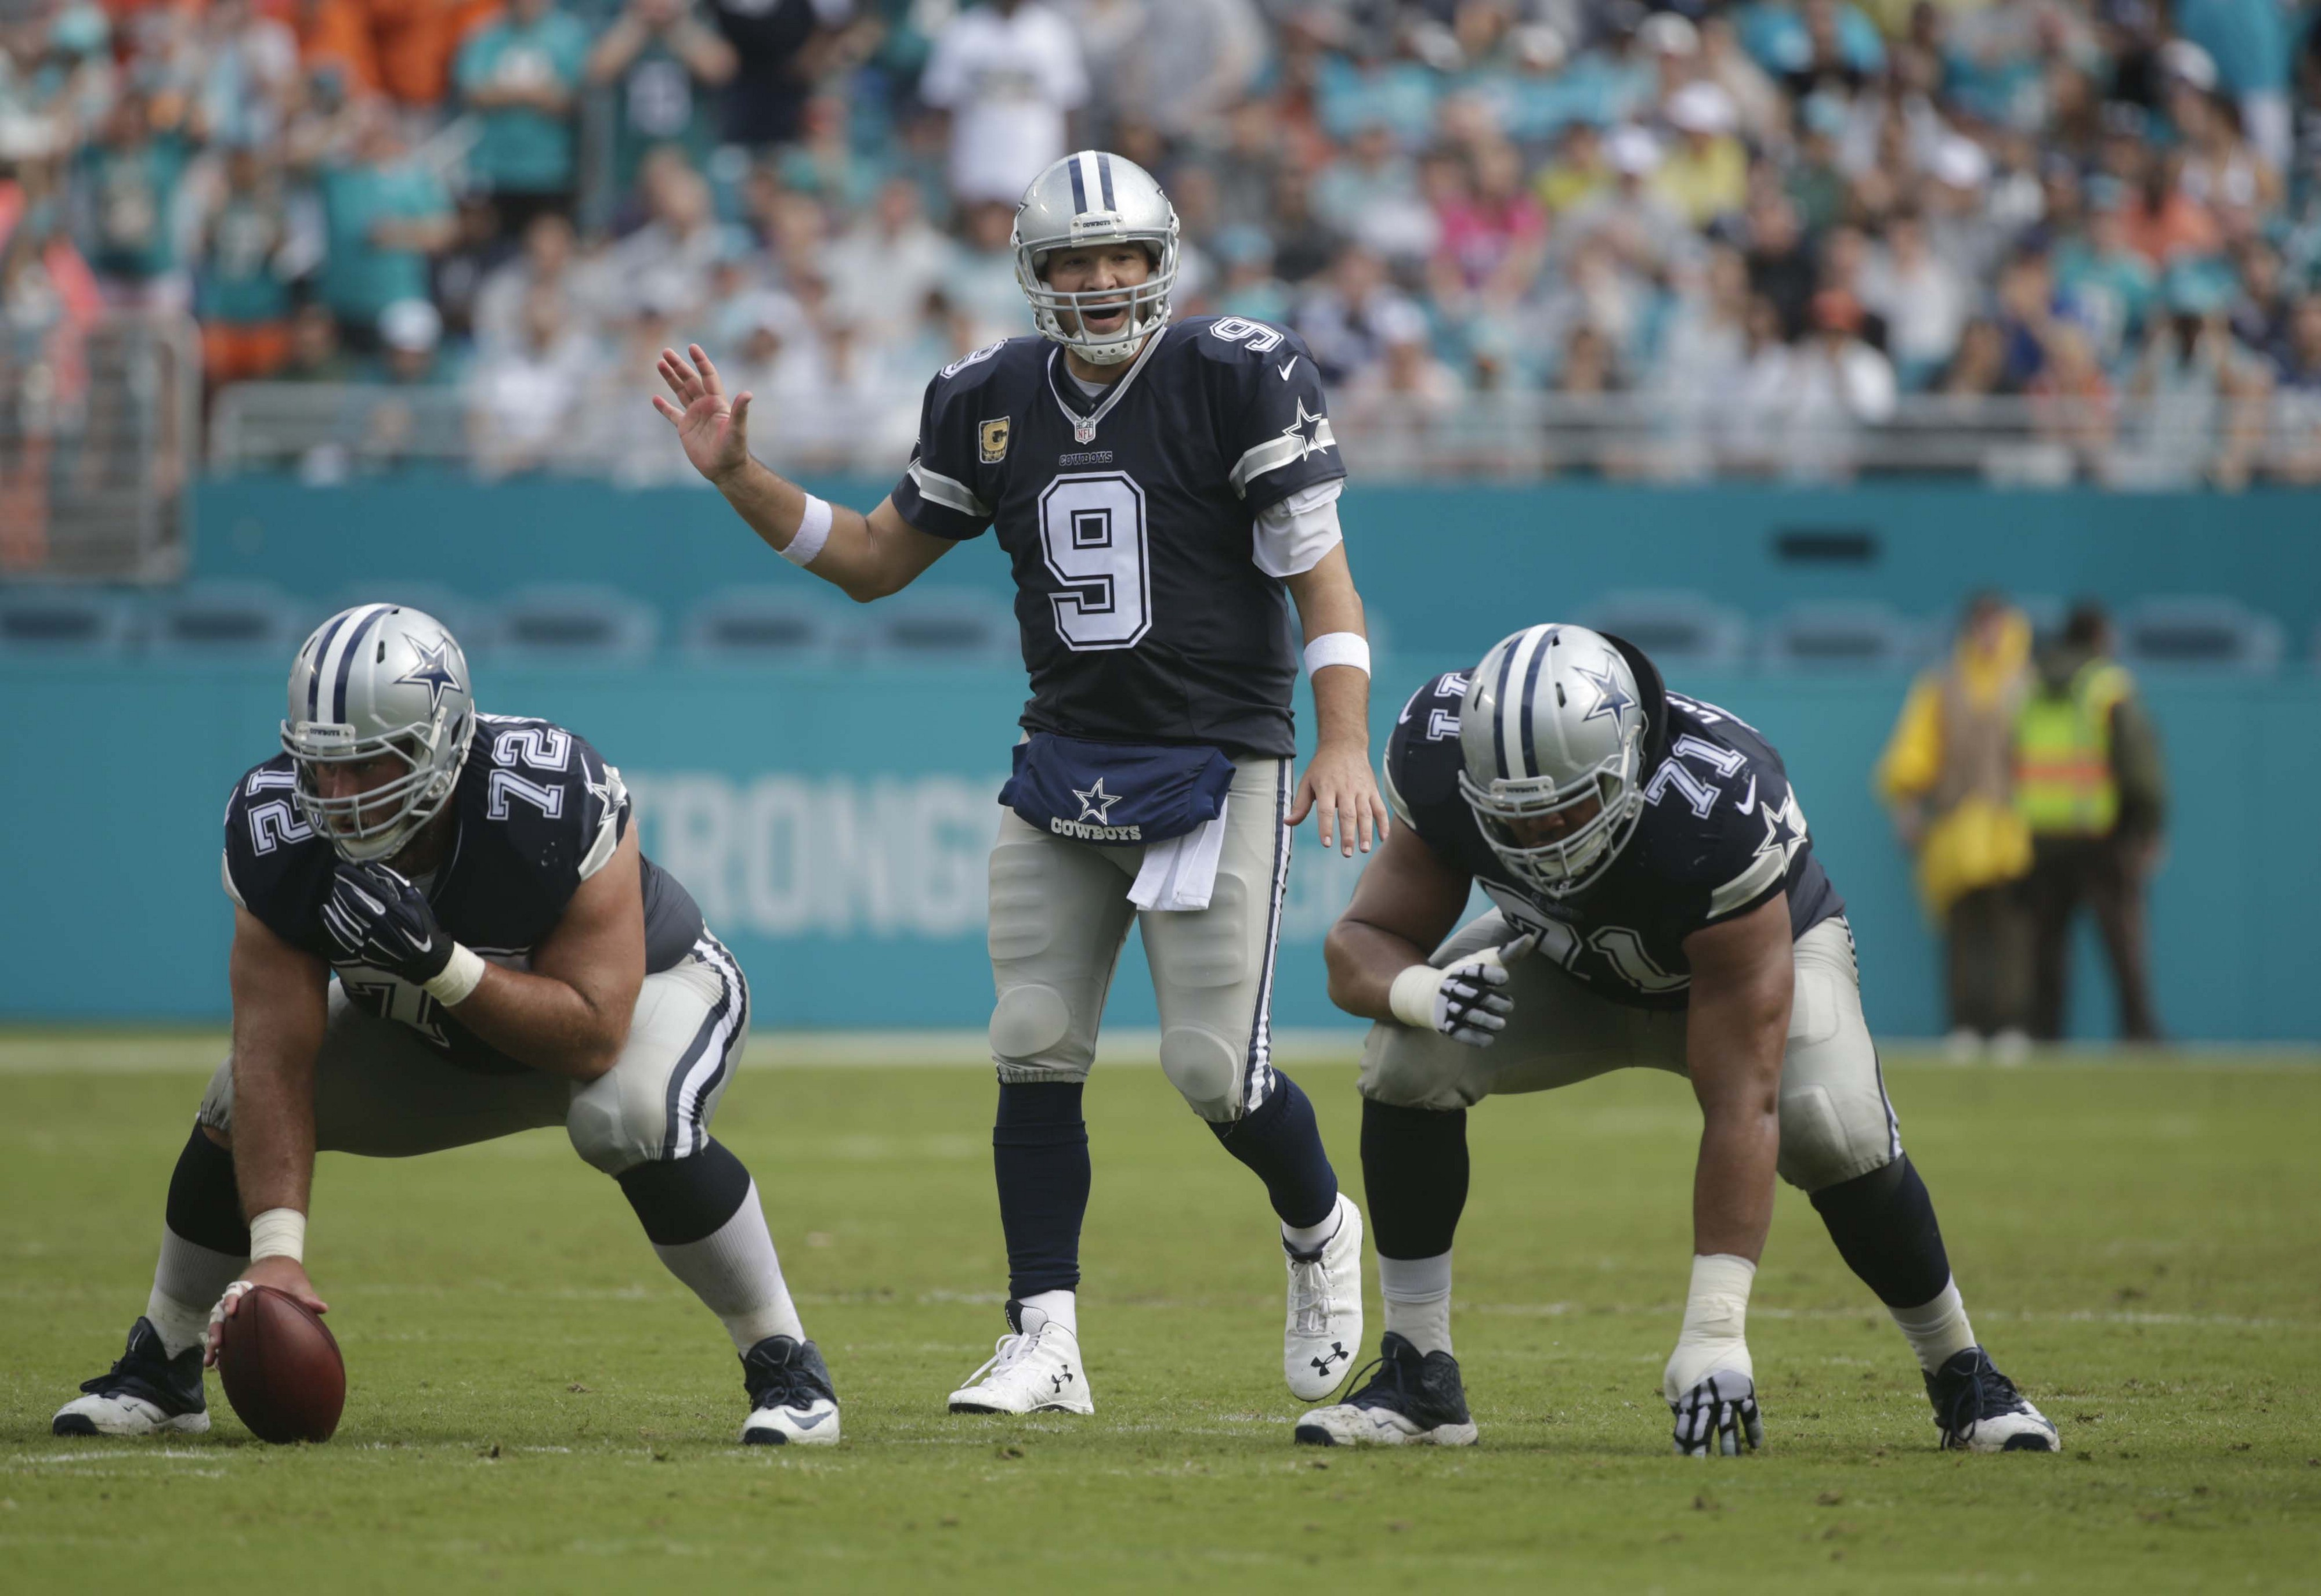 So You Re Telling Me There S A Chance Tony Romo The Cauldron